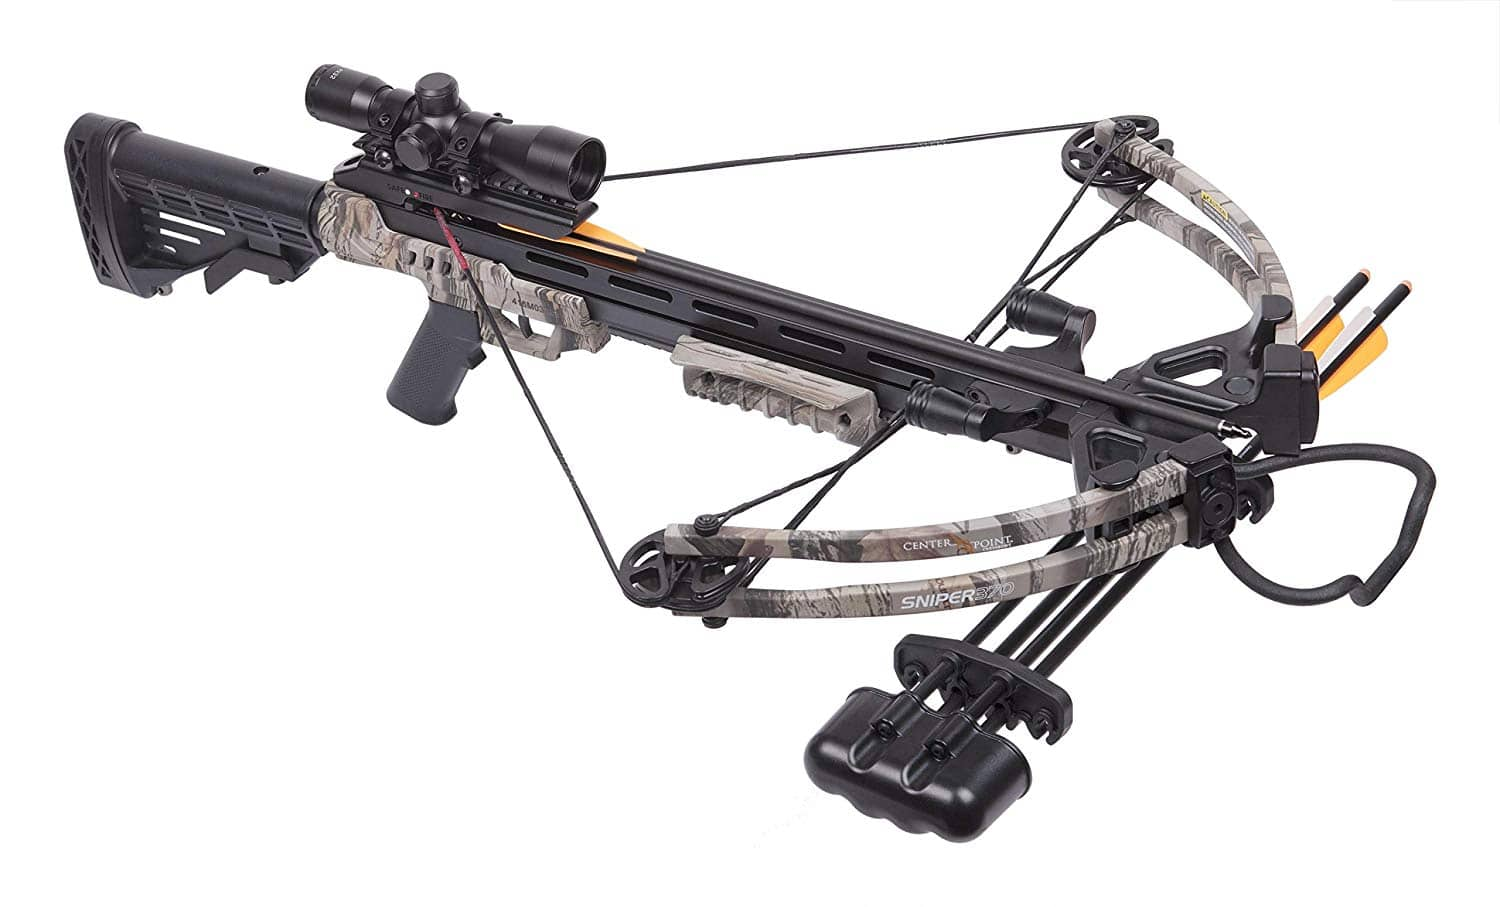 Centerpoint AXCS185CK Sniper 370 Crossbow Package $179.16